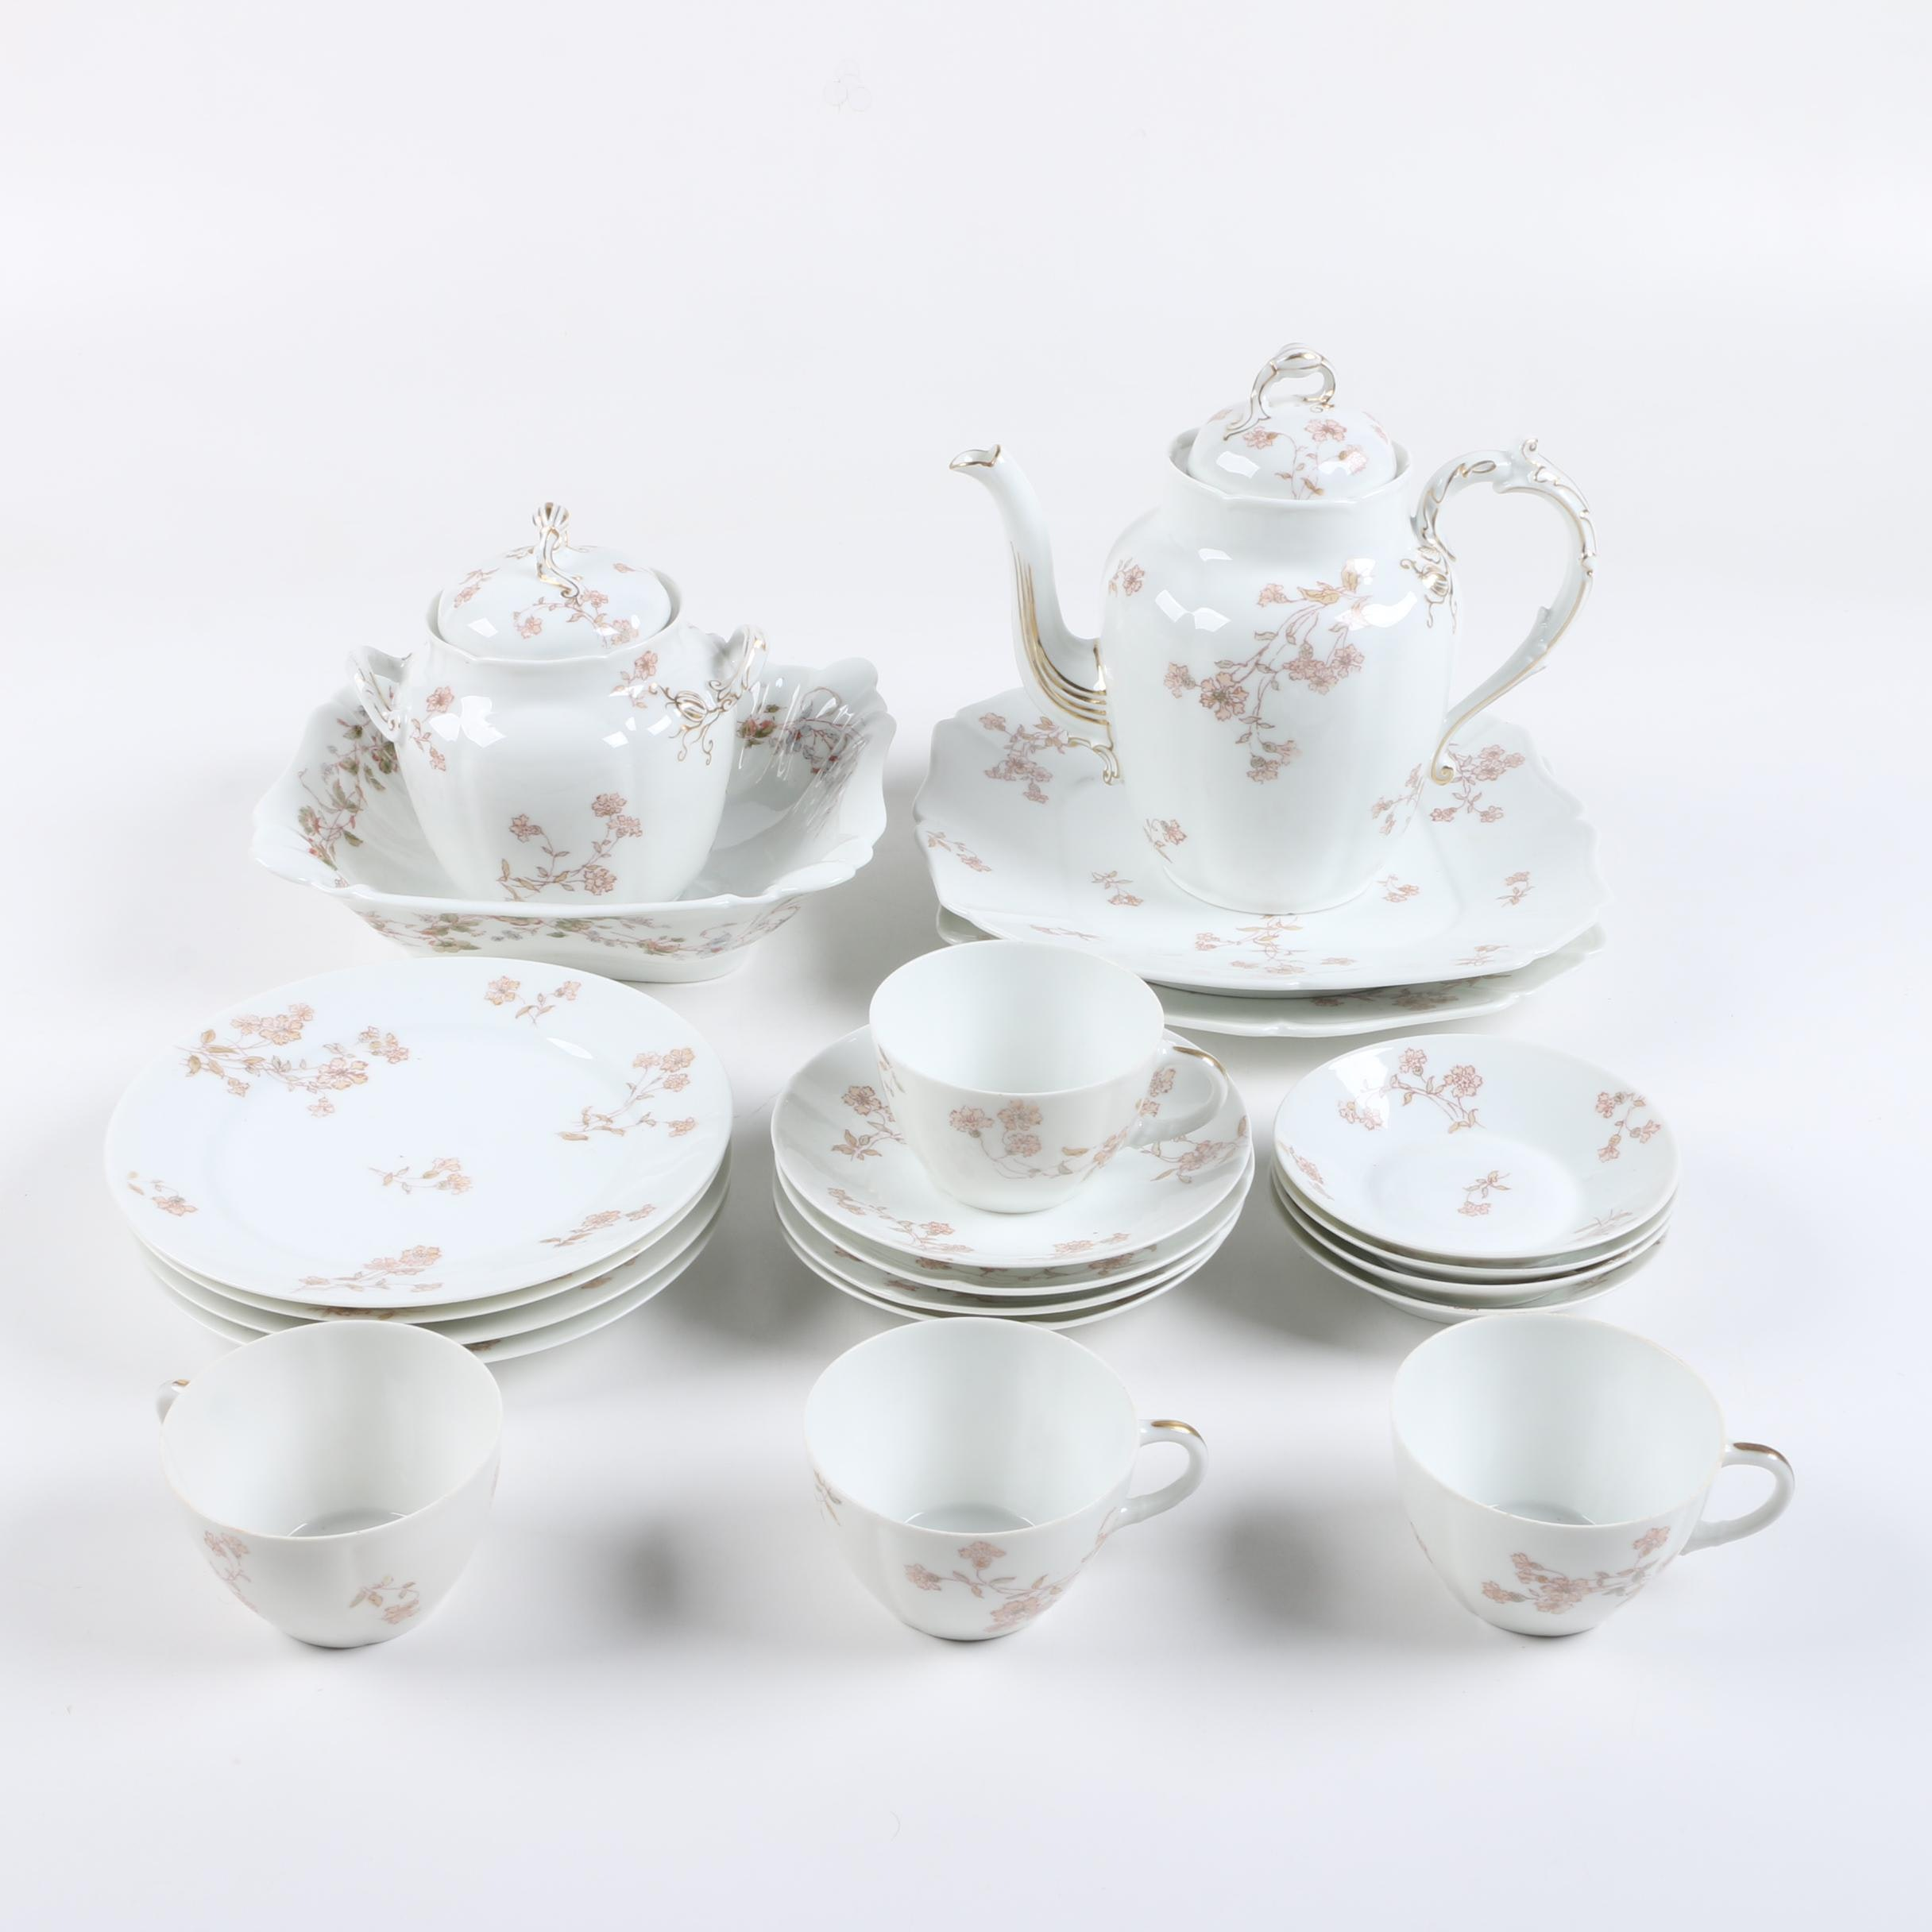 C.H. Field Haviland Limoges Tableware